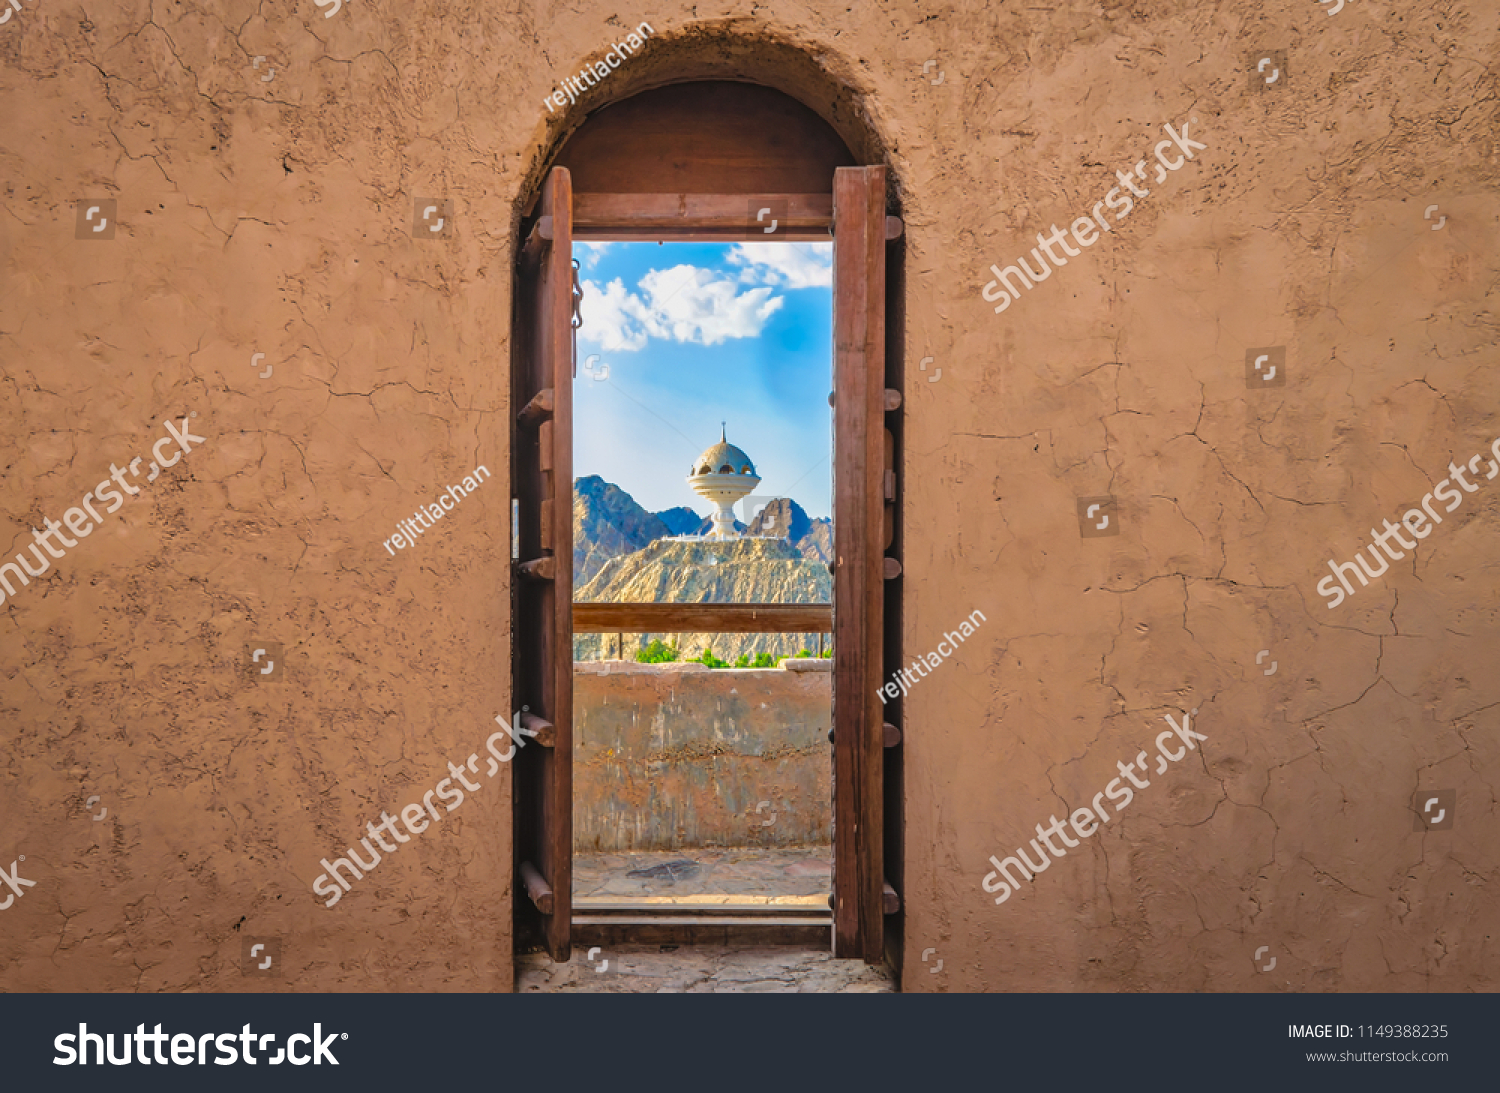 Narrow archway with old, heavy wooden doors opened to show the famous frankincense monument of Muscat, Oman.